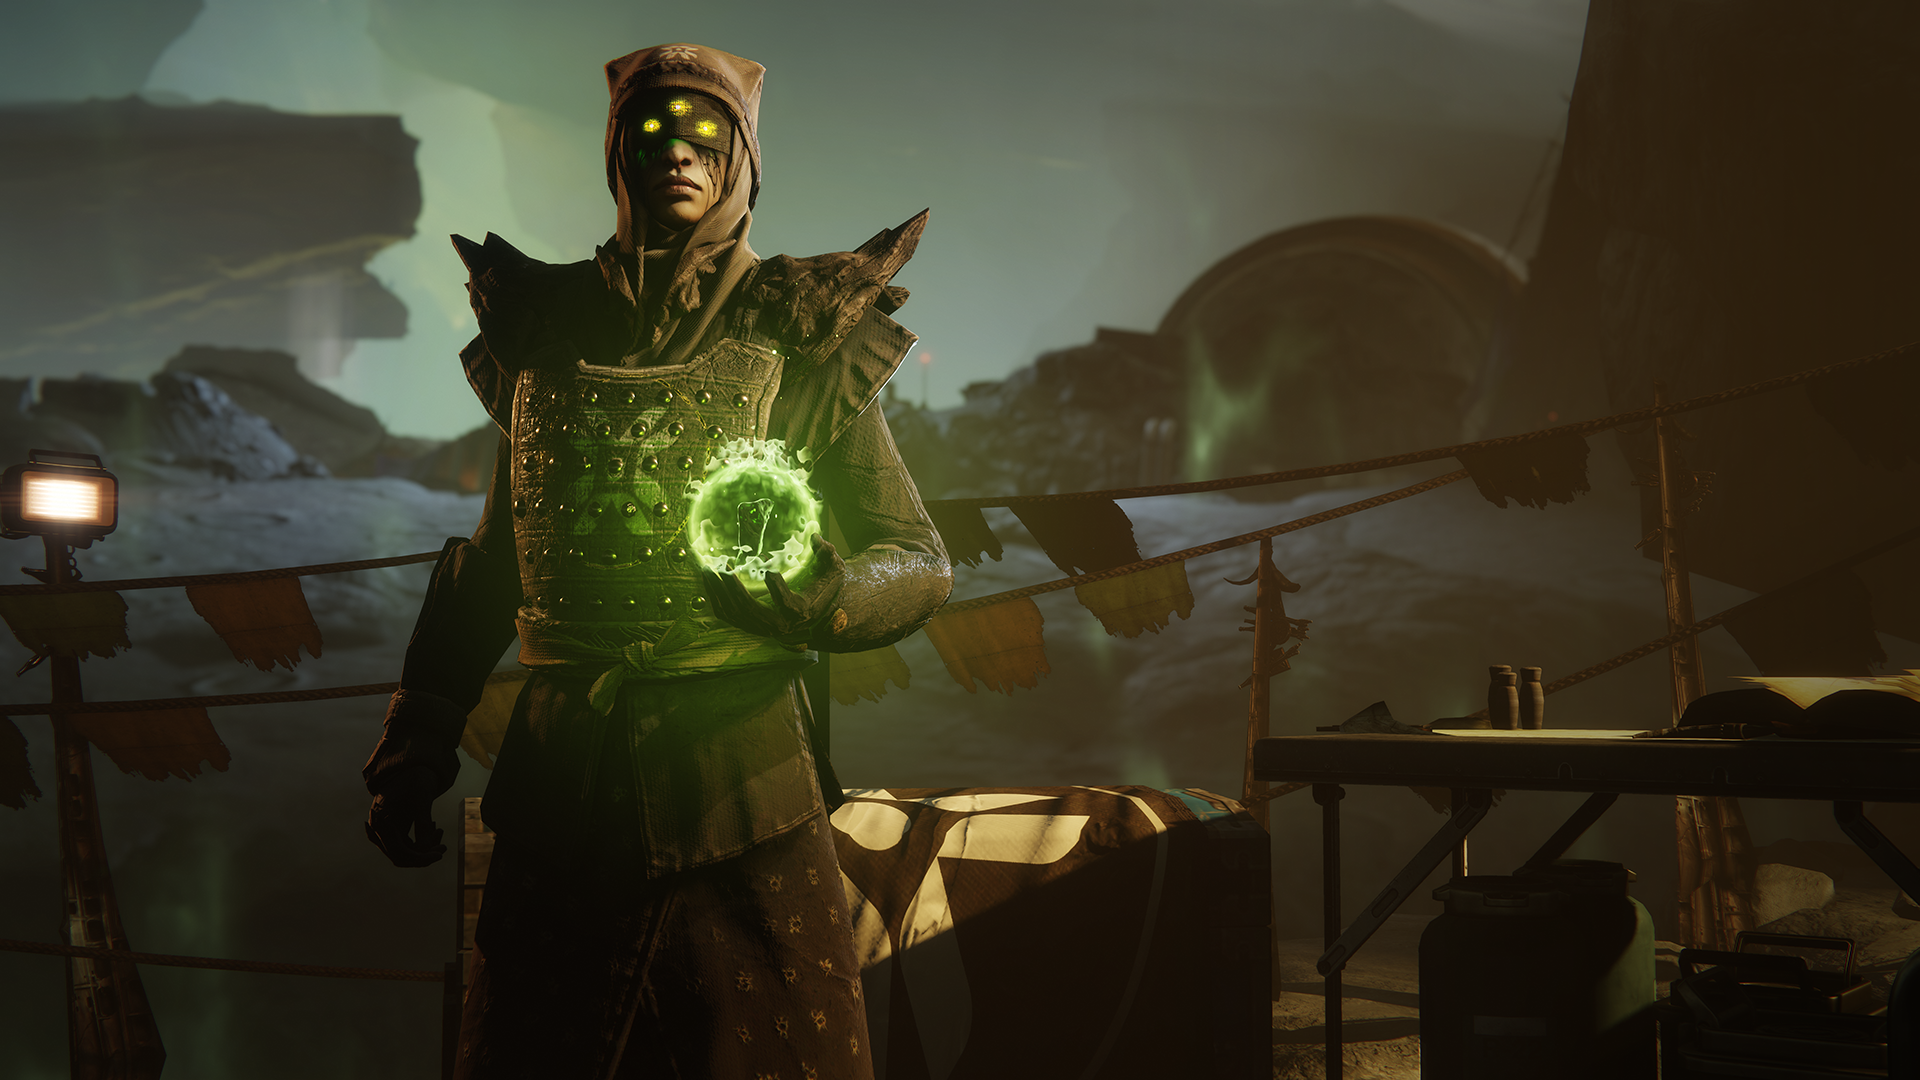 Bungie Appears To Be Fixing Destiny 2's Season Pass Issue That Made Add-On Disappear